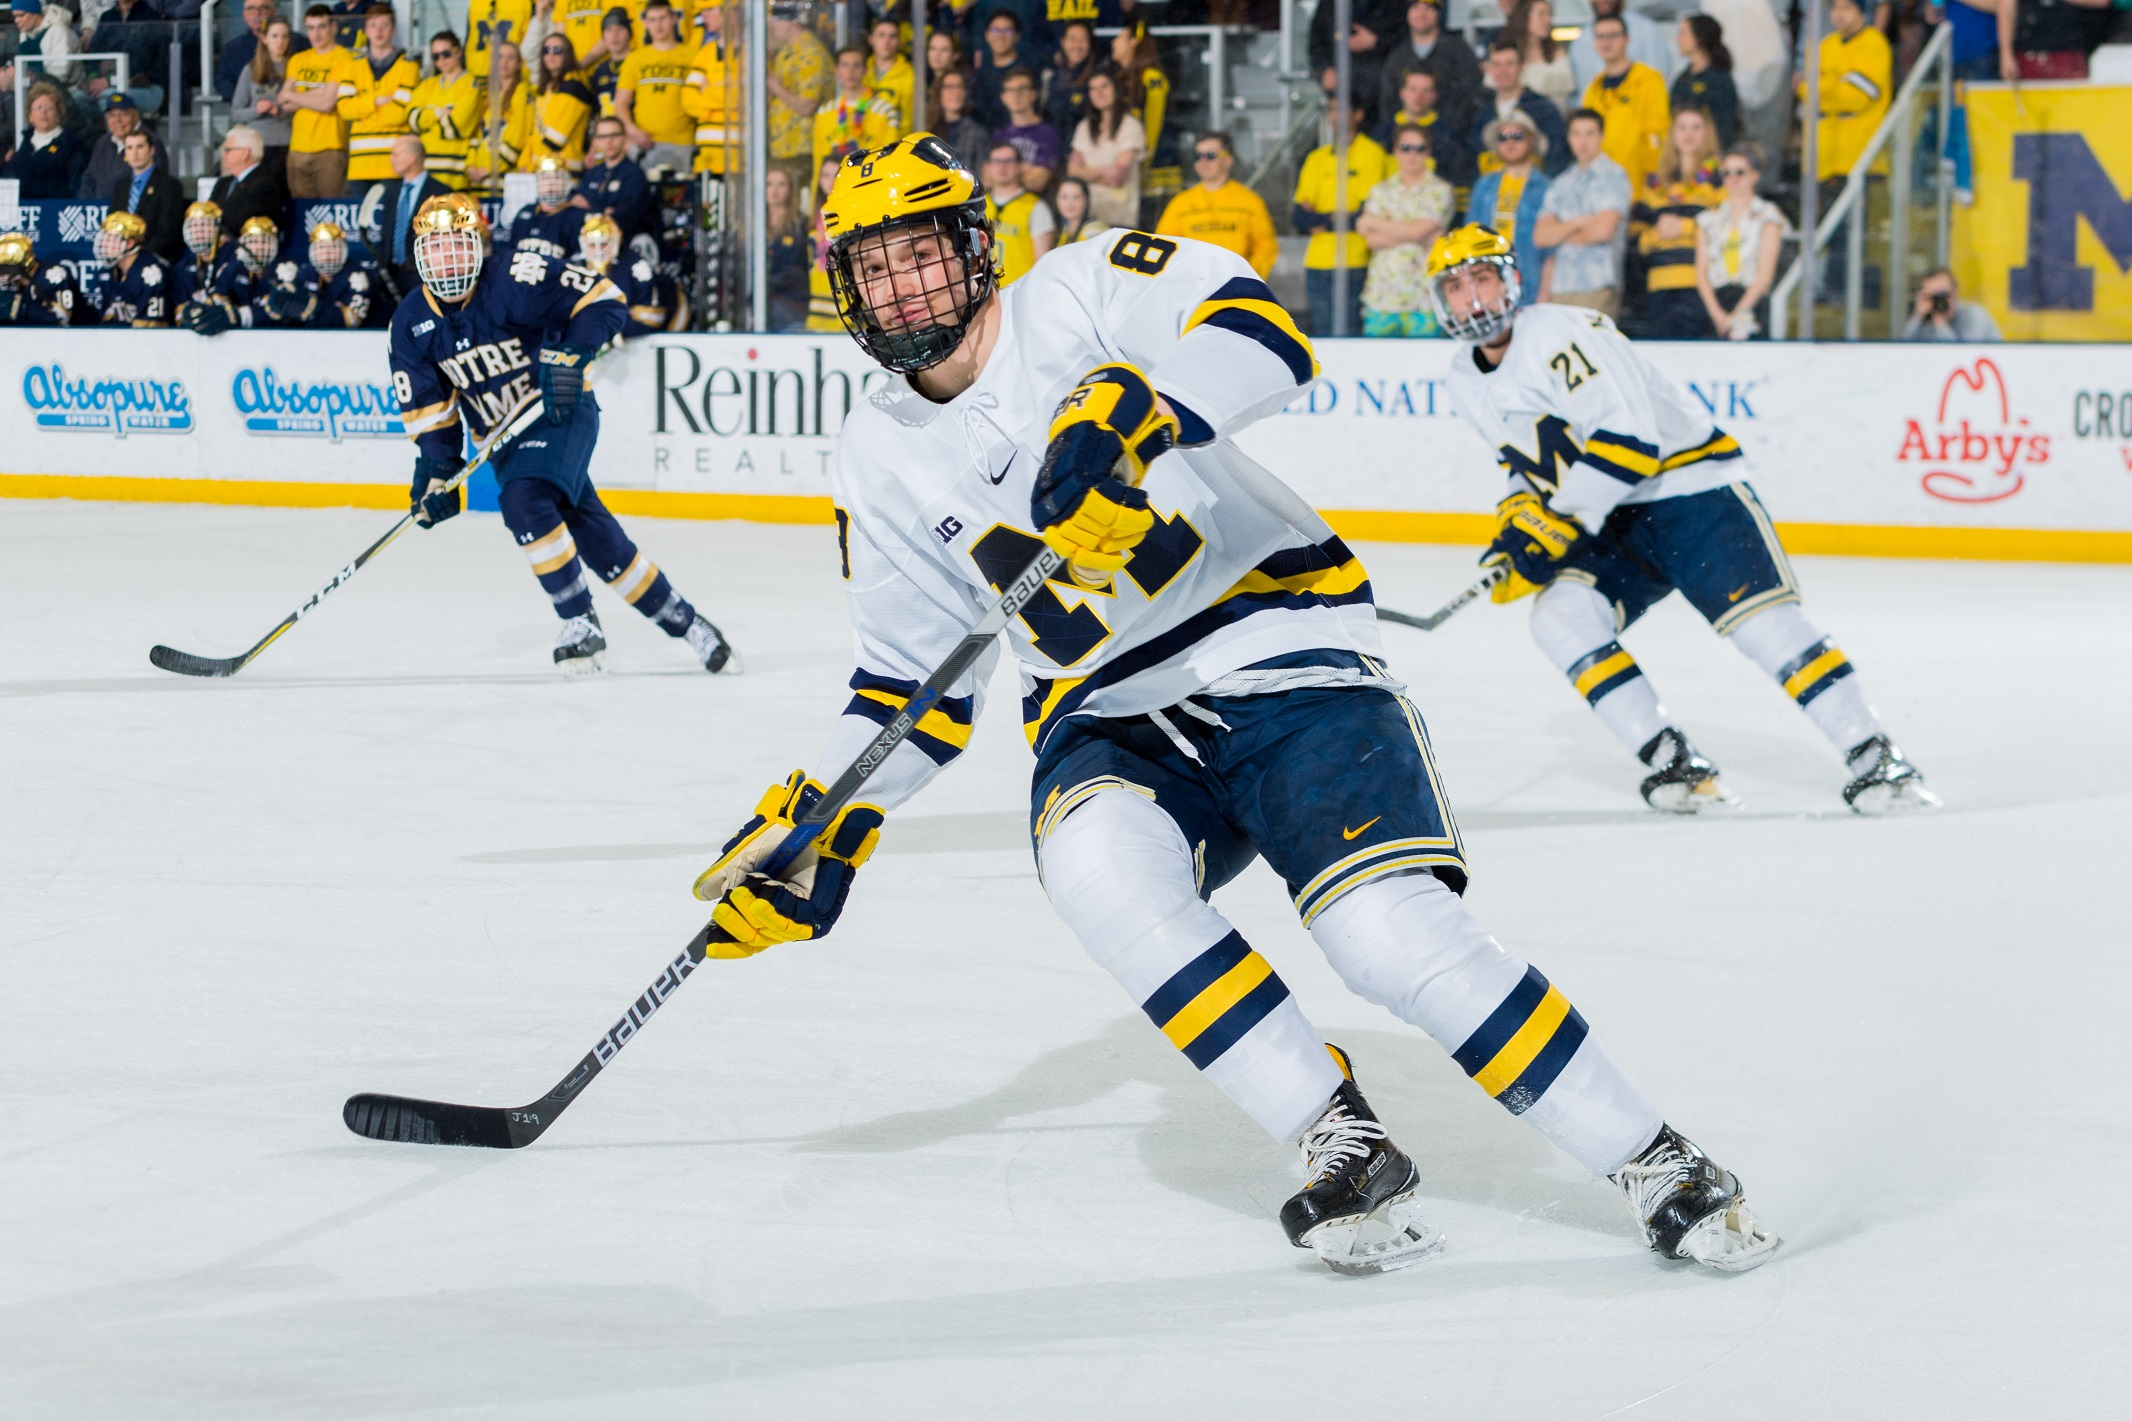 Frozen Four schedule, start times and live streams